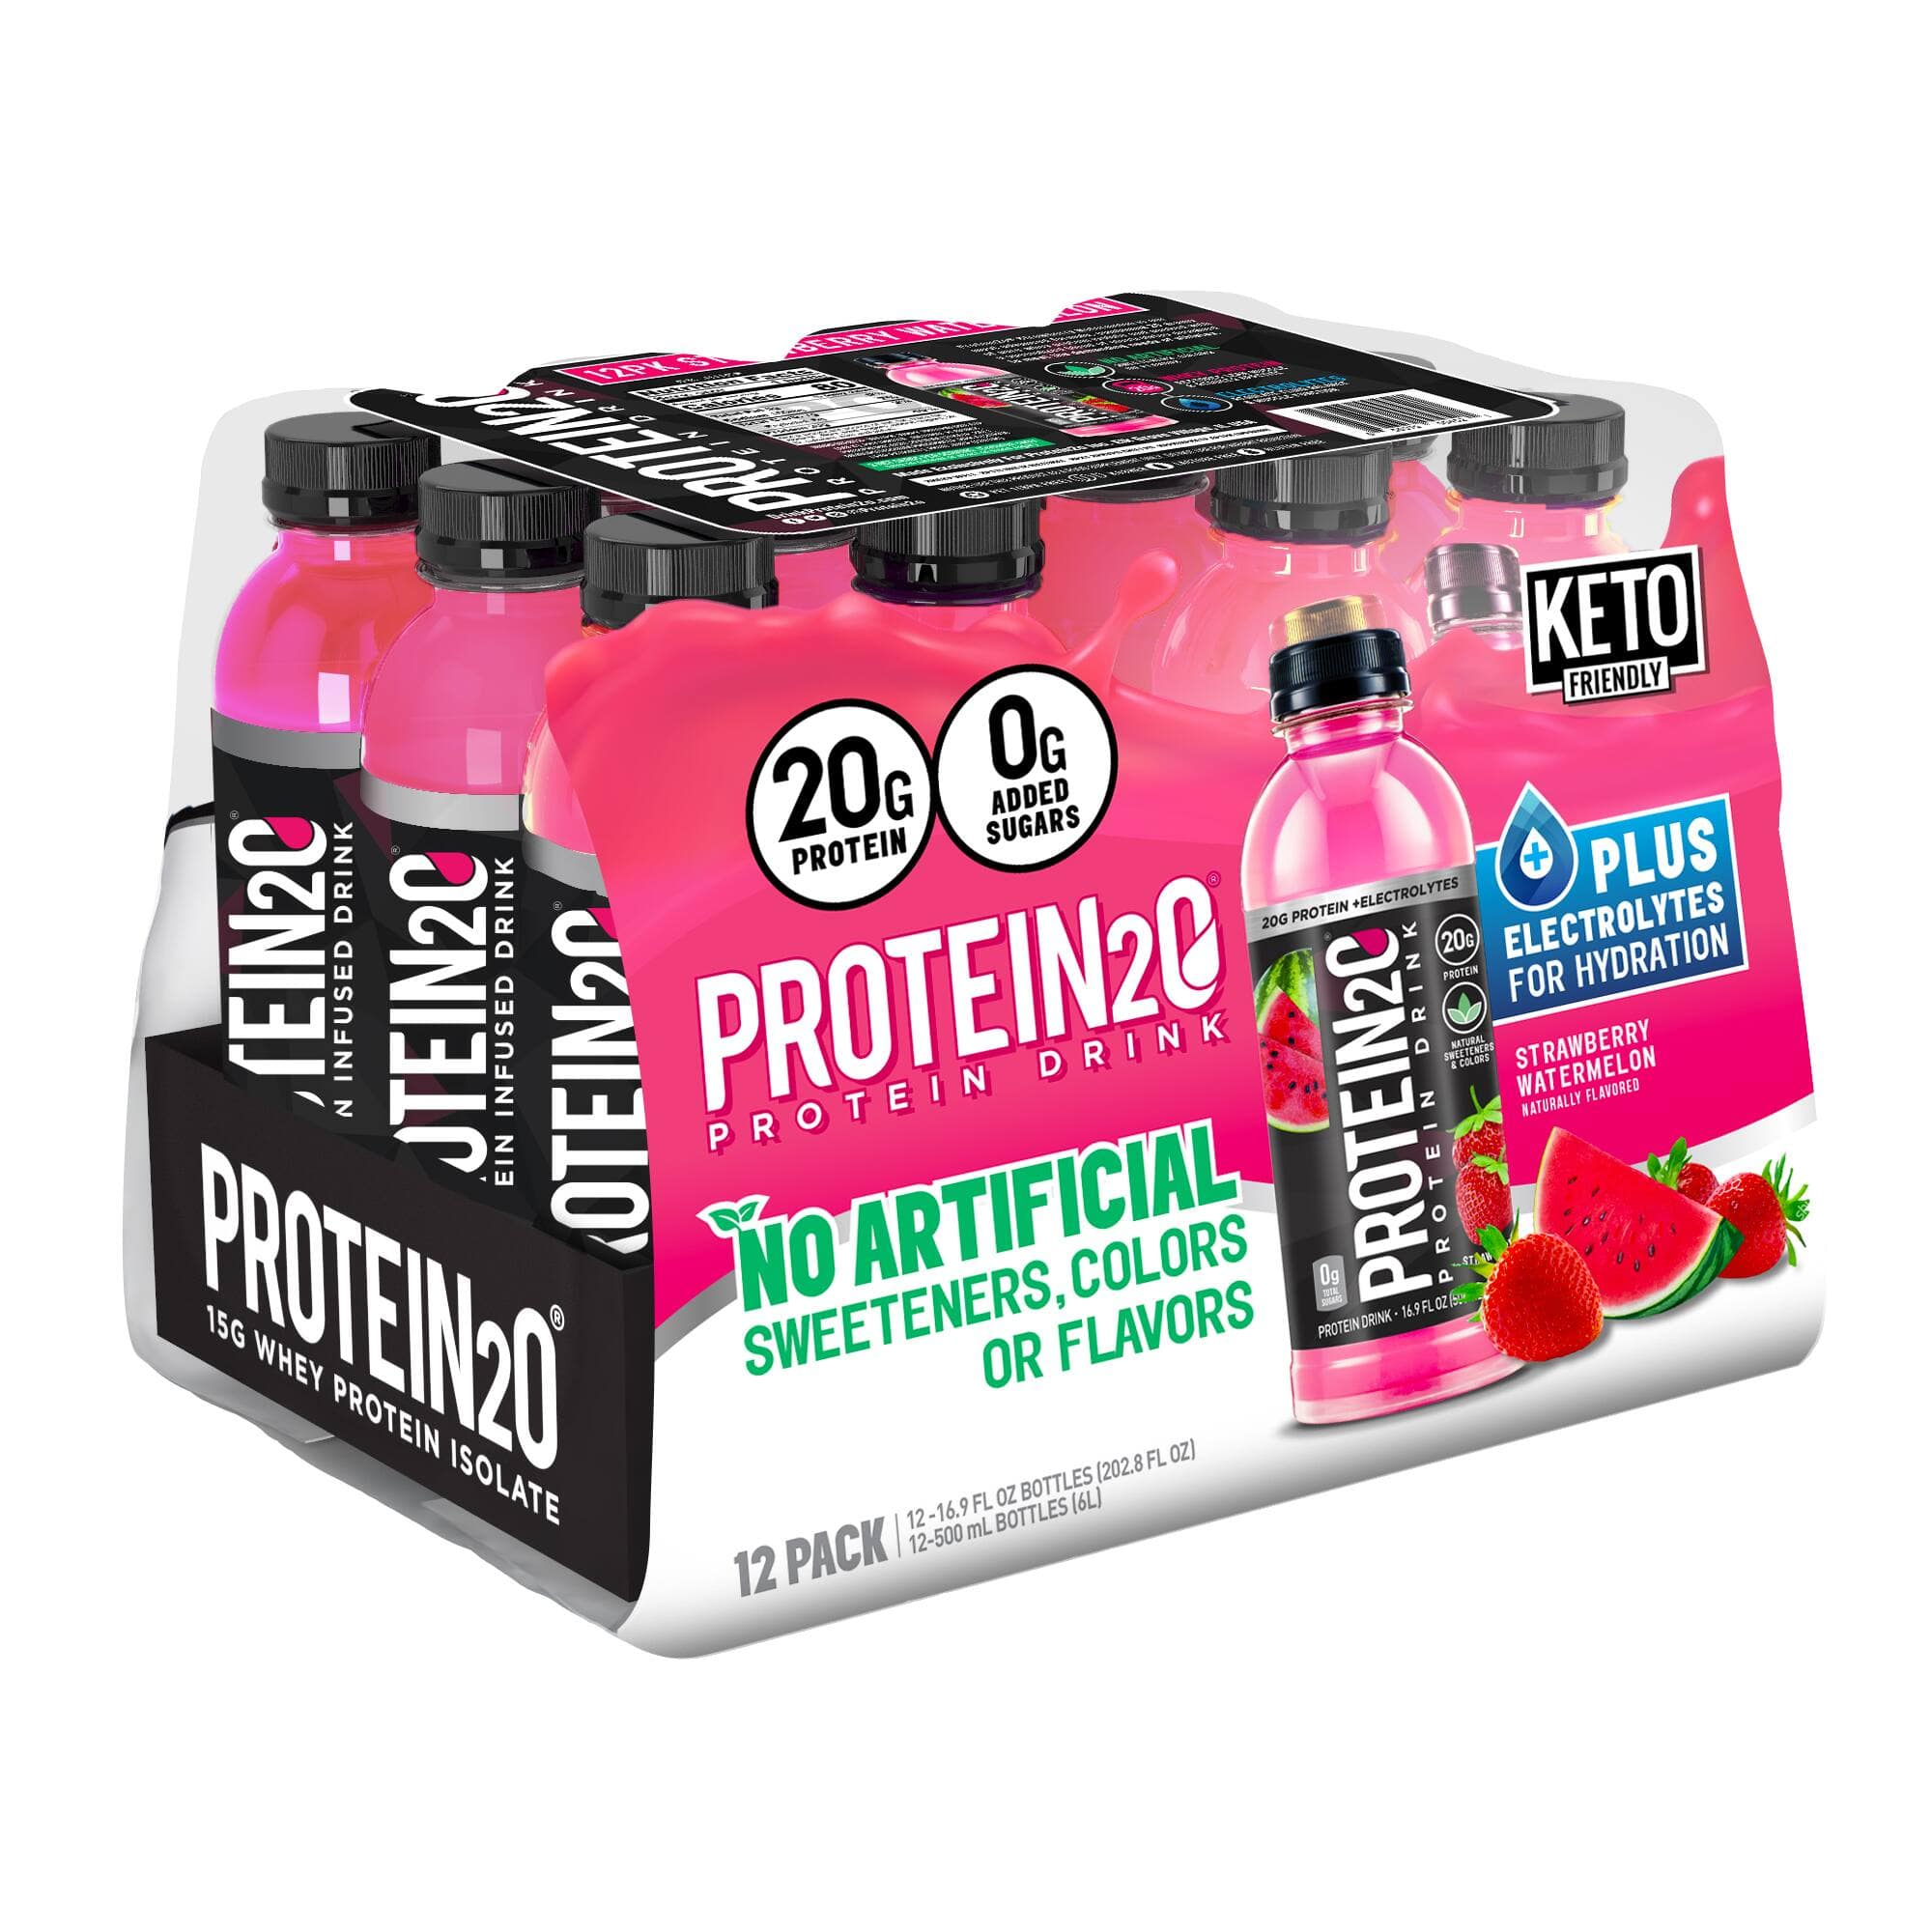 Costco Club Members: 12pk of Protein2o Protein Water (Online: $22.99 / InClub: $14.99) + Free Shipping for Online Orders